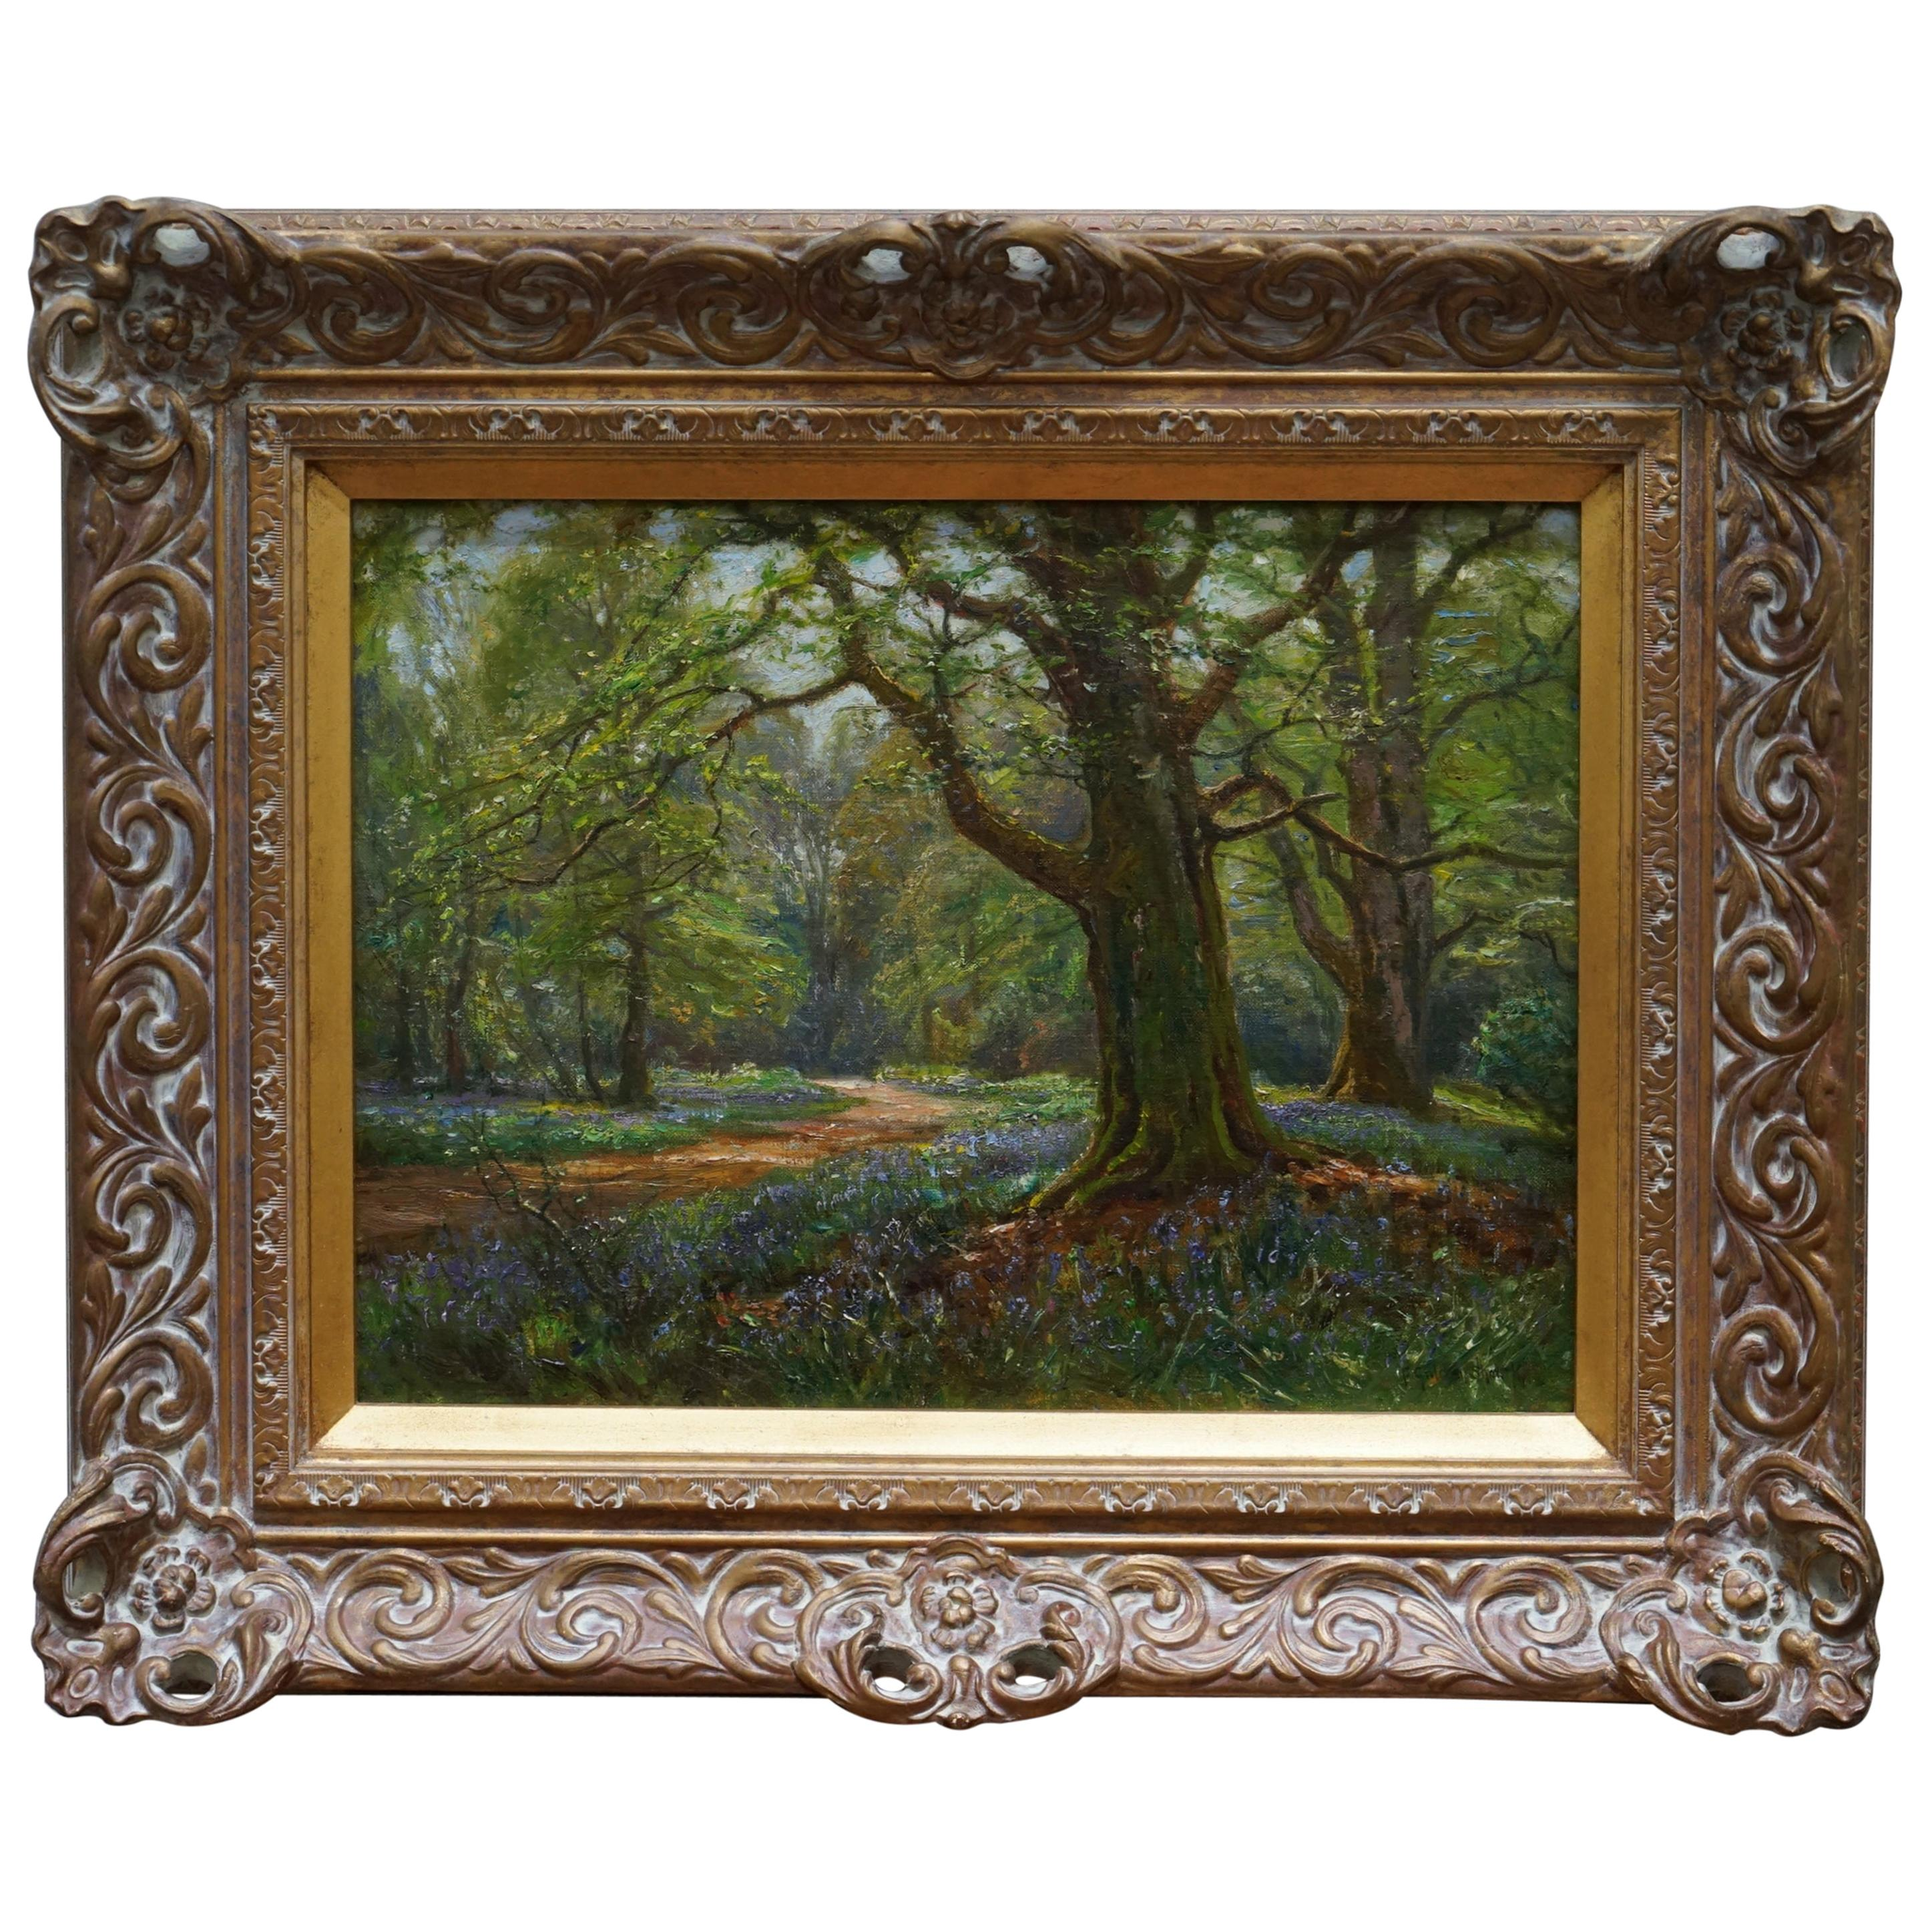 Frederick Golden Short New Forest Bluebell Wood Signed & Dated 1912 Oil Painting